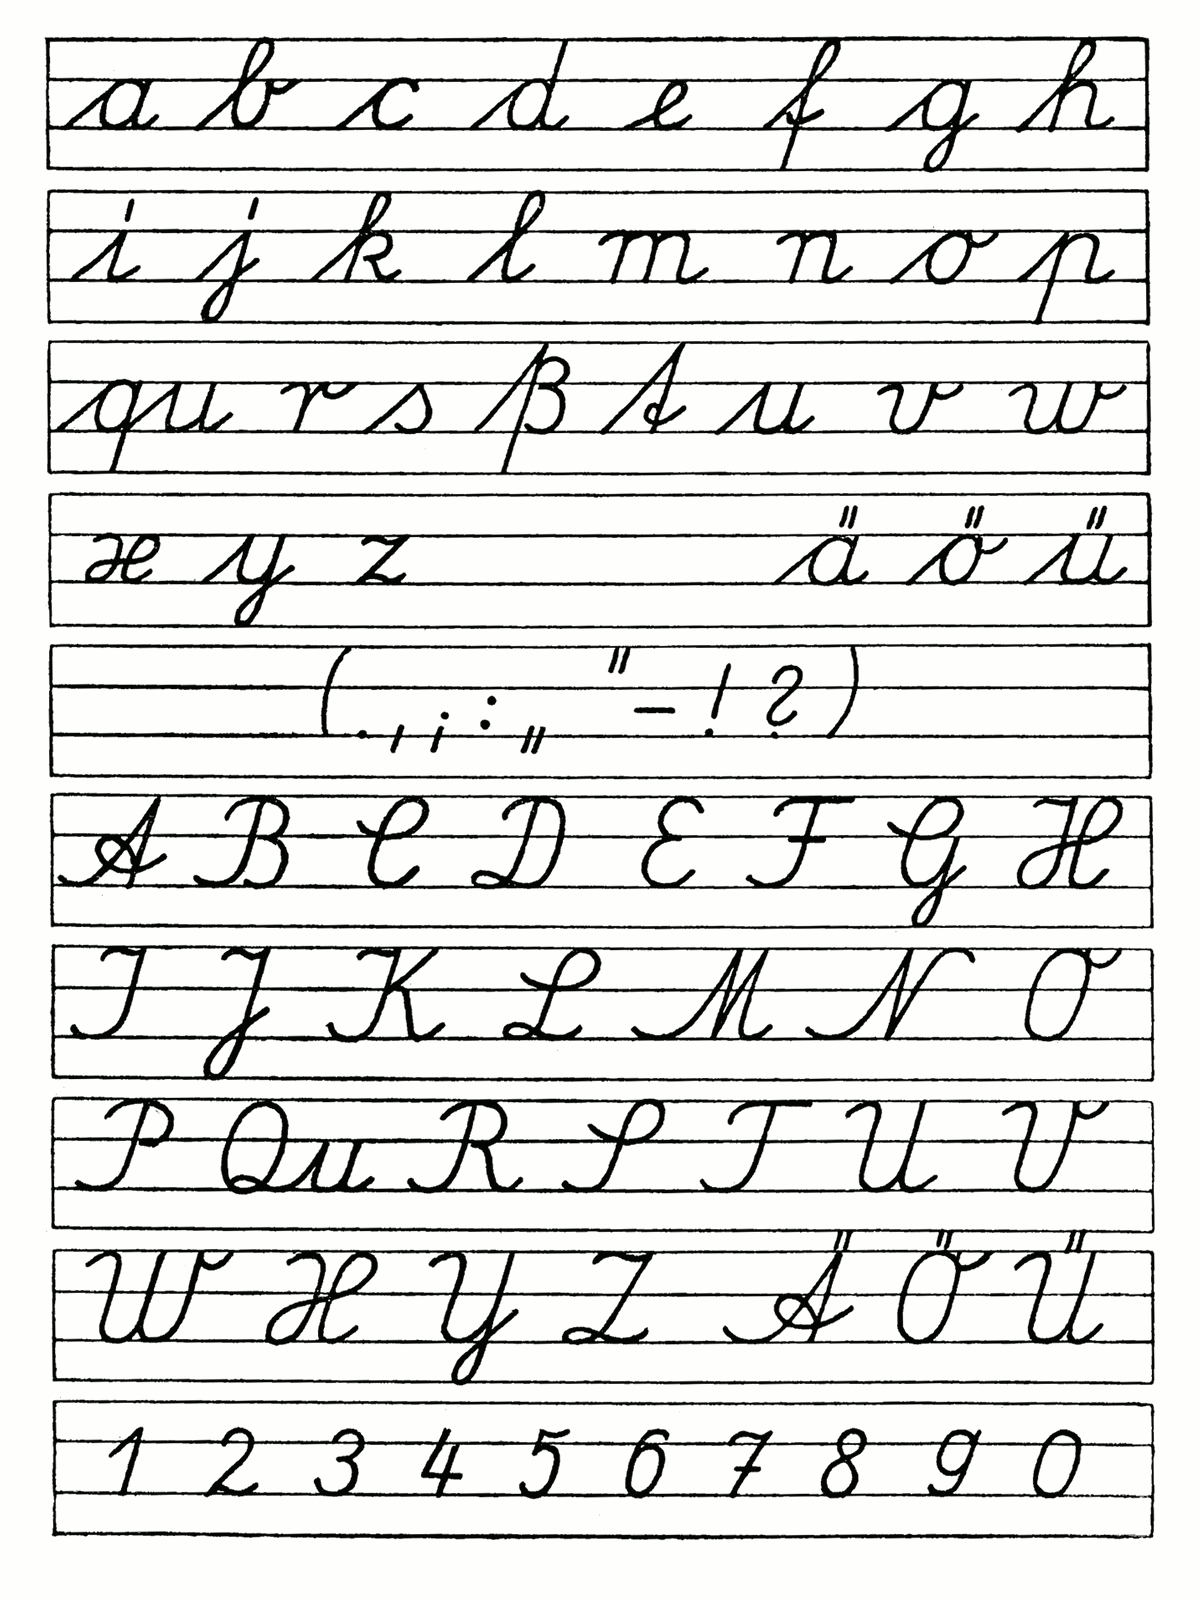 Wikipedia Gdr Handwriting - Link To Discussion Of Different for Alphabet Handwriting Worksheets A To Z Pdf